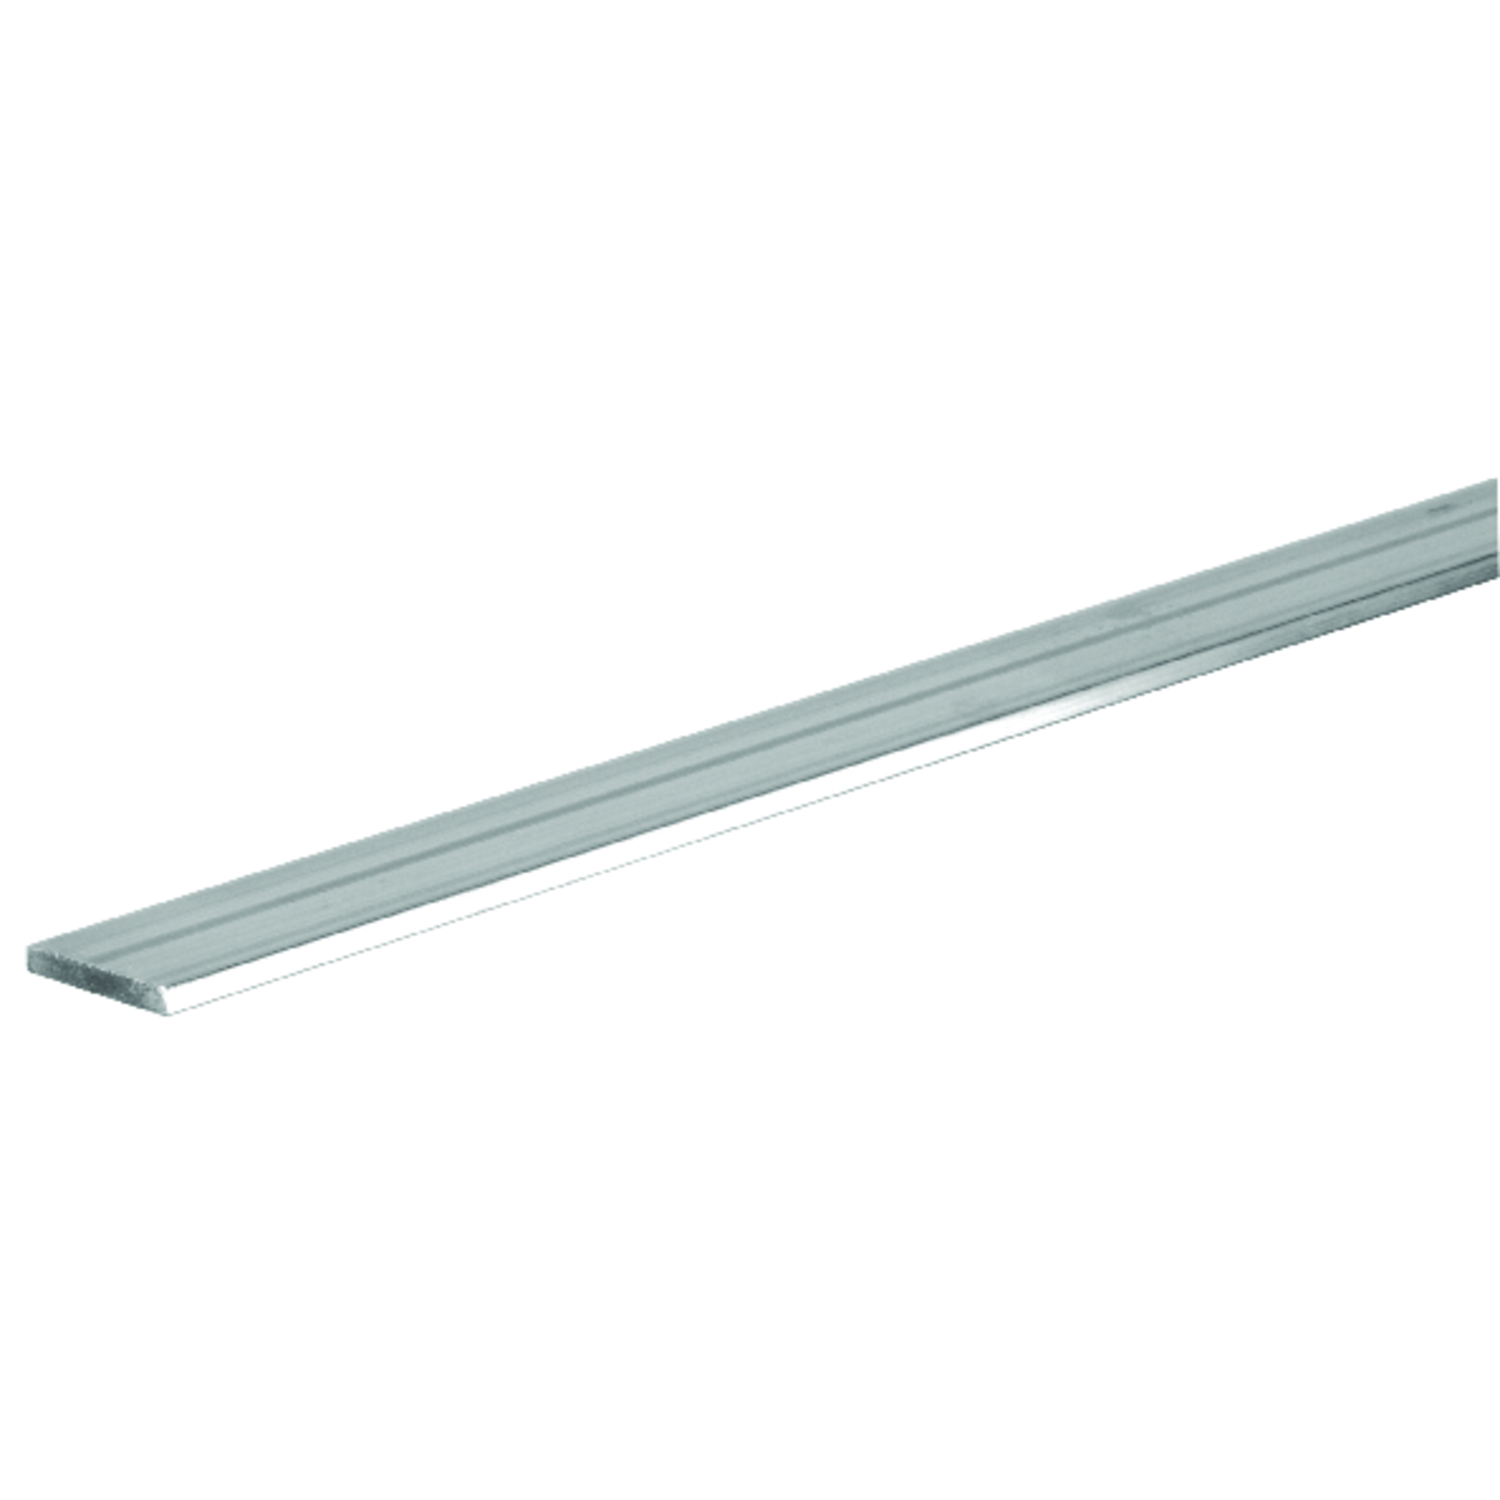 Boltmaster  0.125 in.  x 2 in. W x 6 ft. L Weldable 5 pk Aluminum Flat Bar